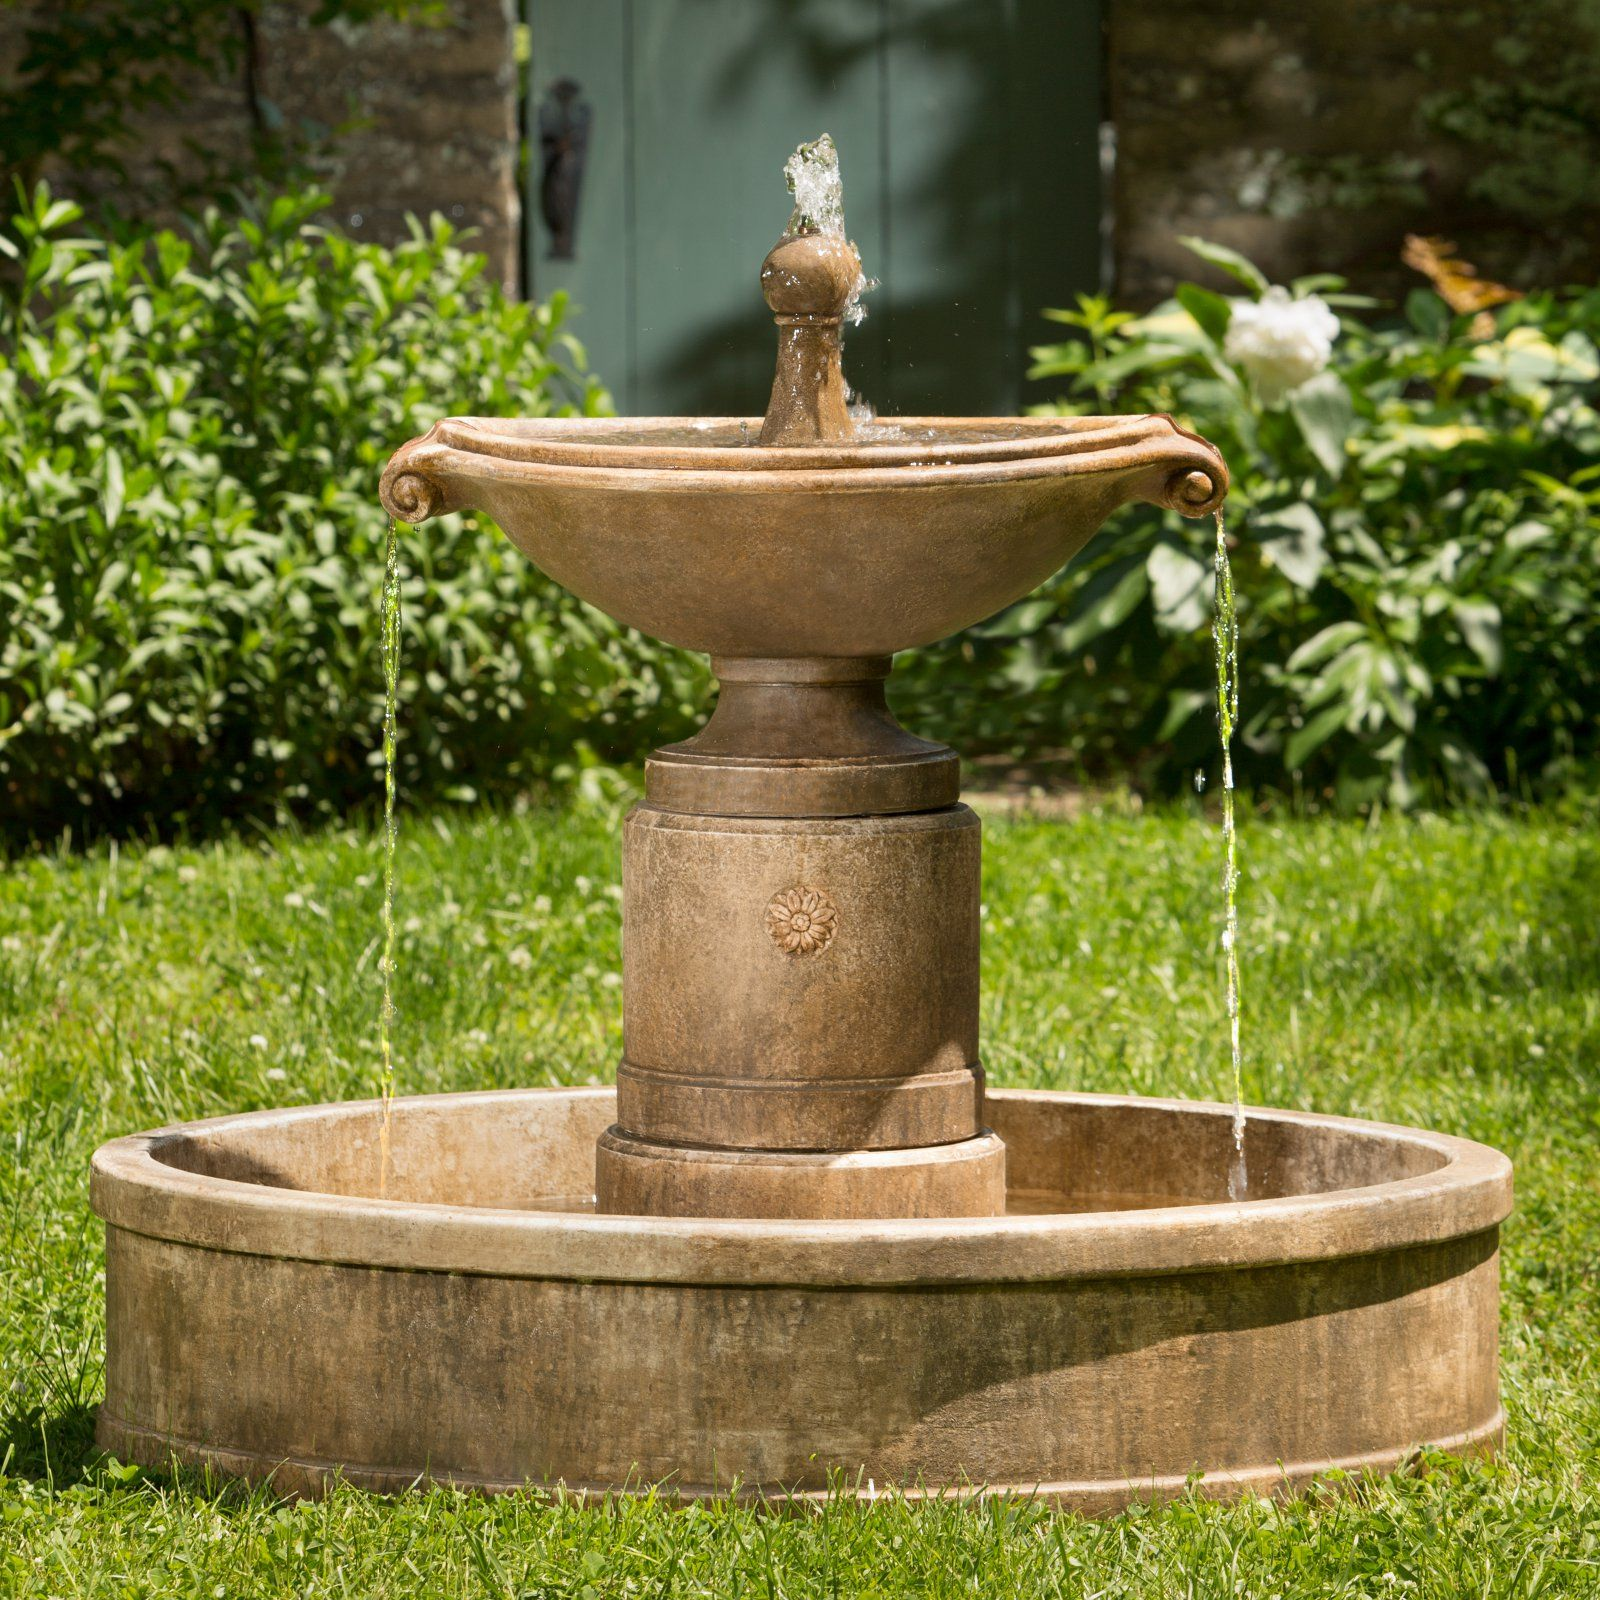 Campania International Borghese In Outdoor Basin Fountain Concrete Fountains Fountains Outdoor Garden Water Fountains